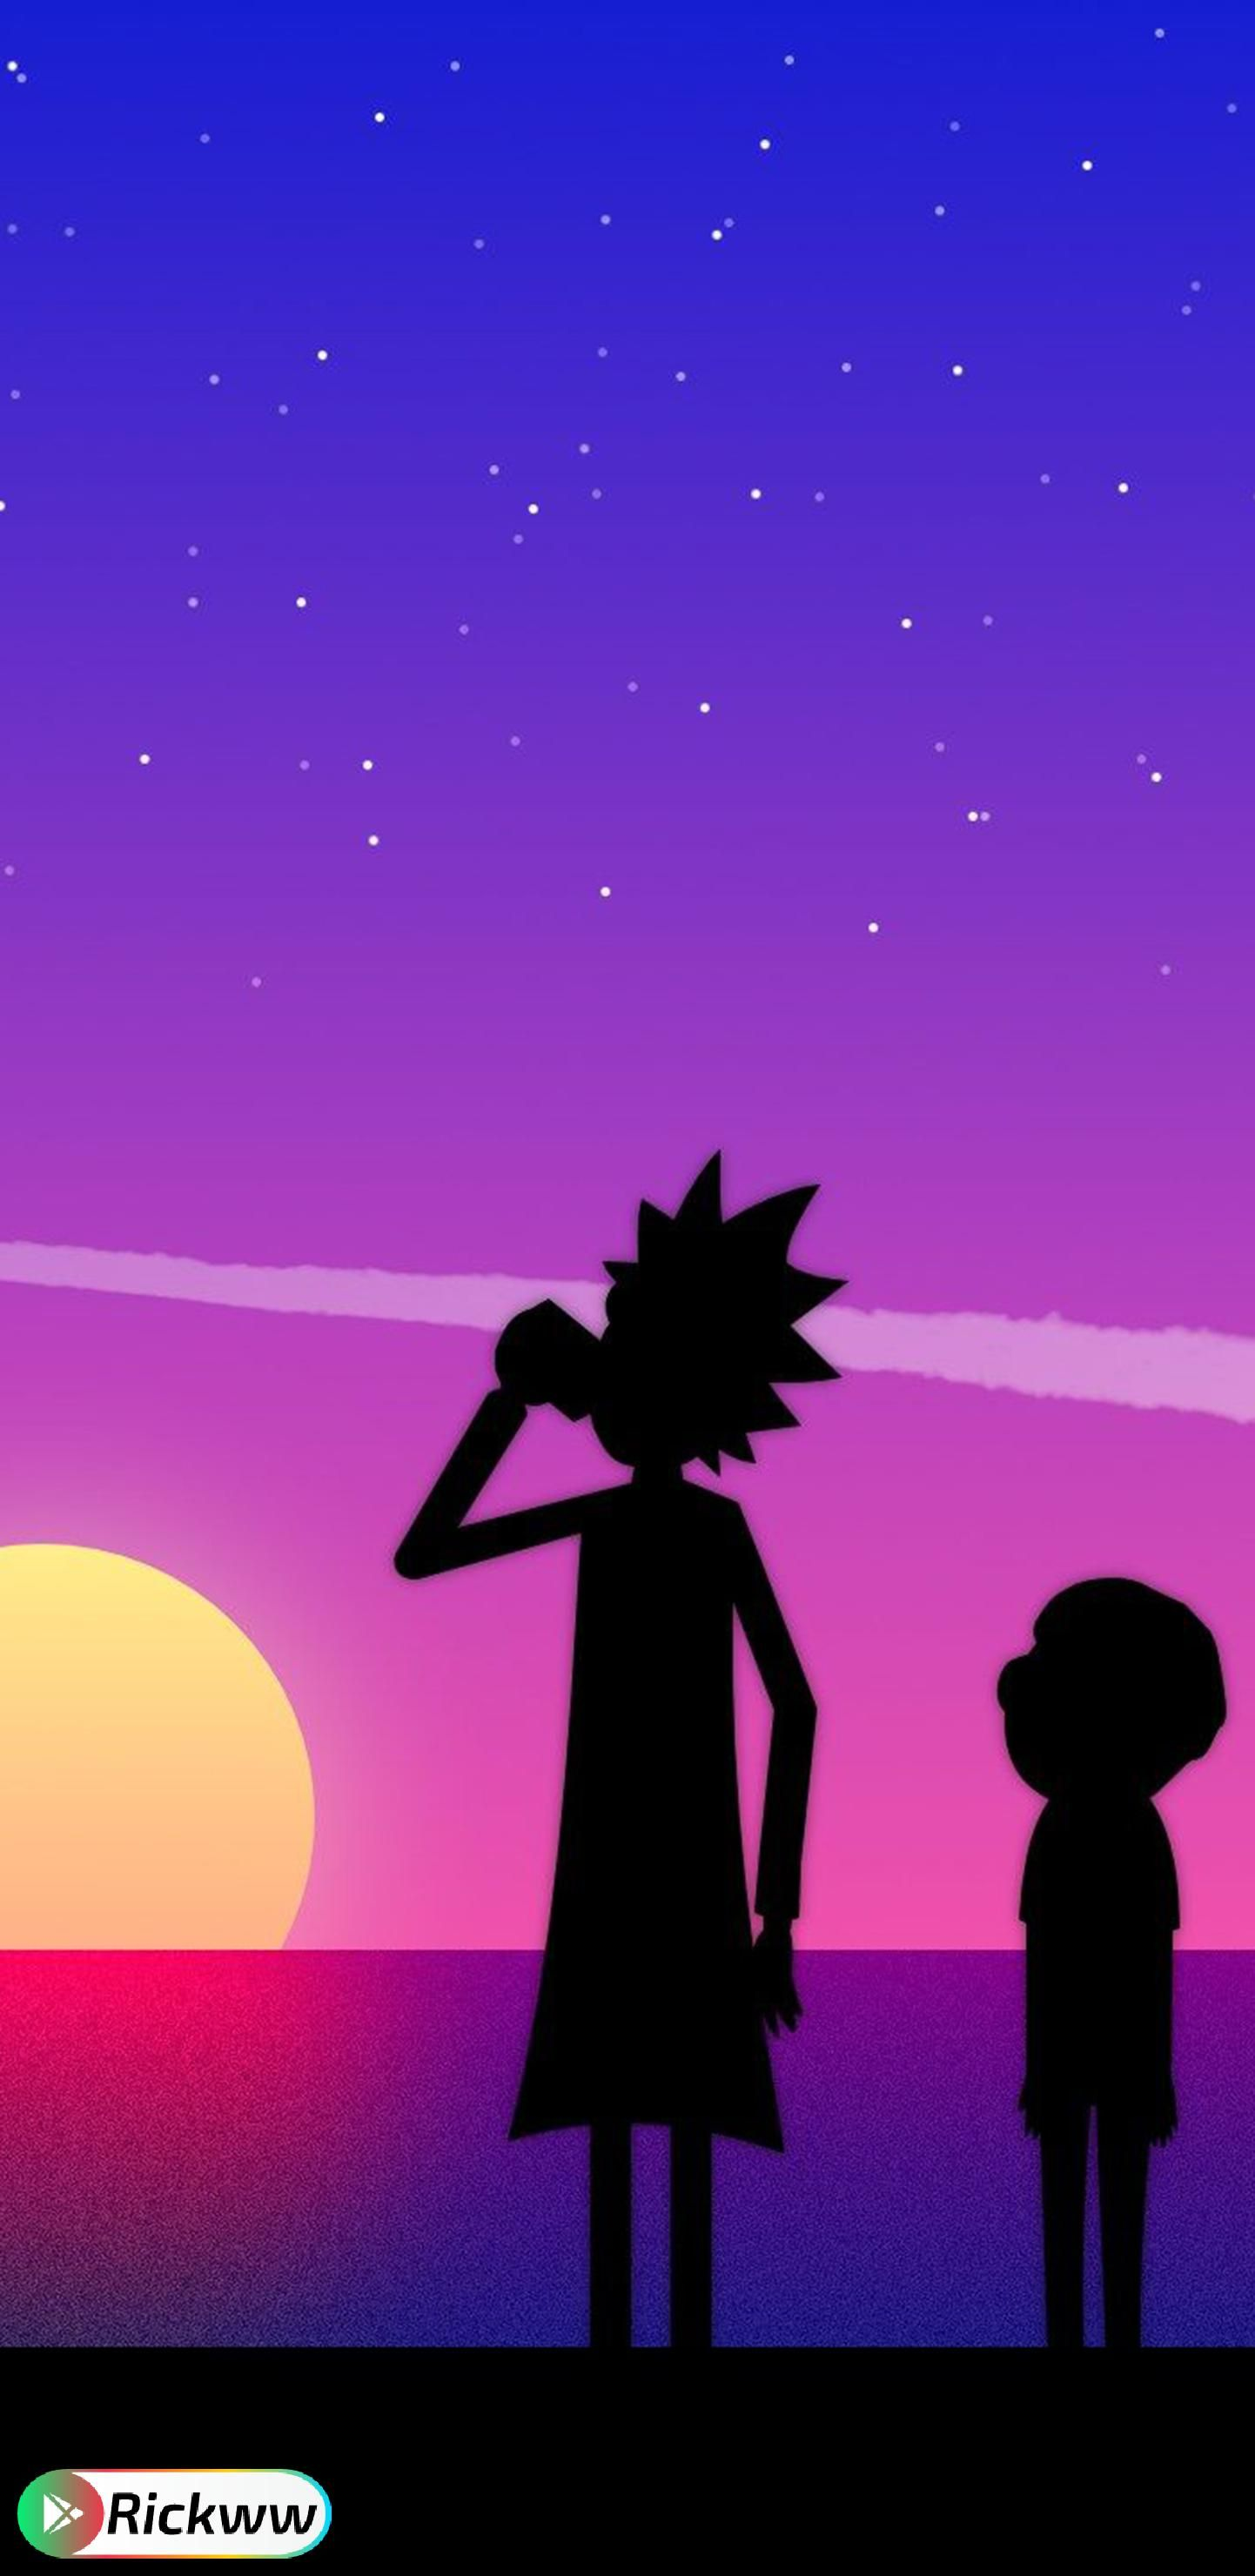 Rickww Rick And Morty Wallpaper Get 2k 4k Hd Wallpaper For